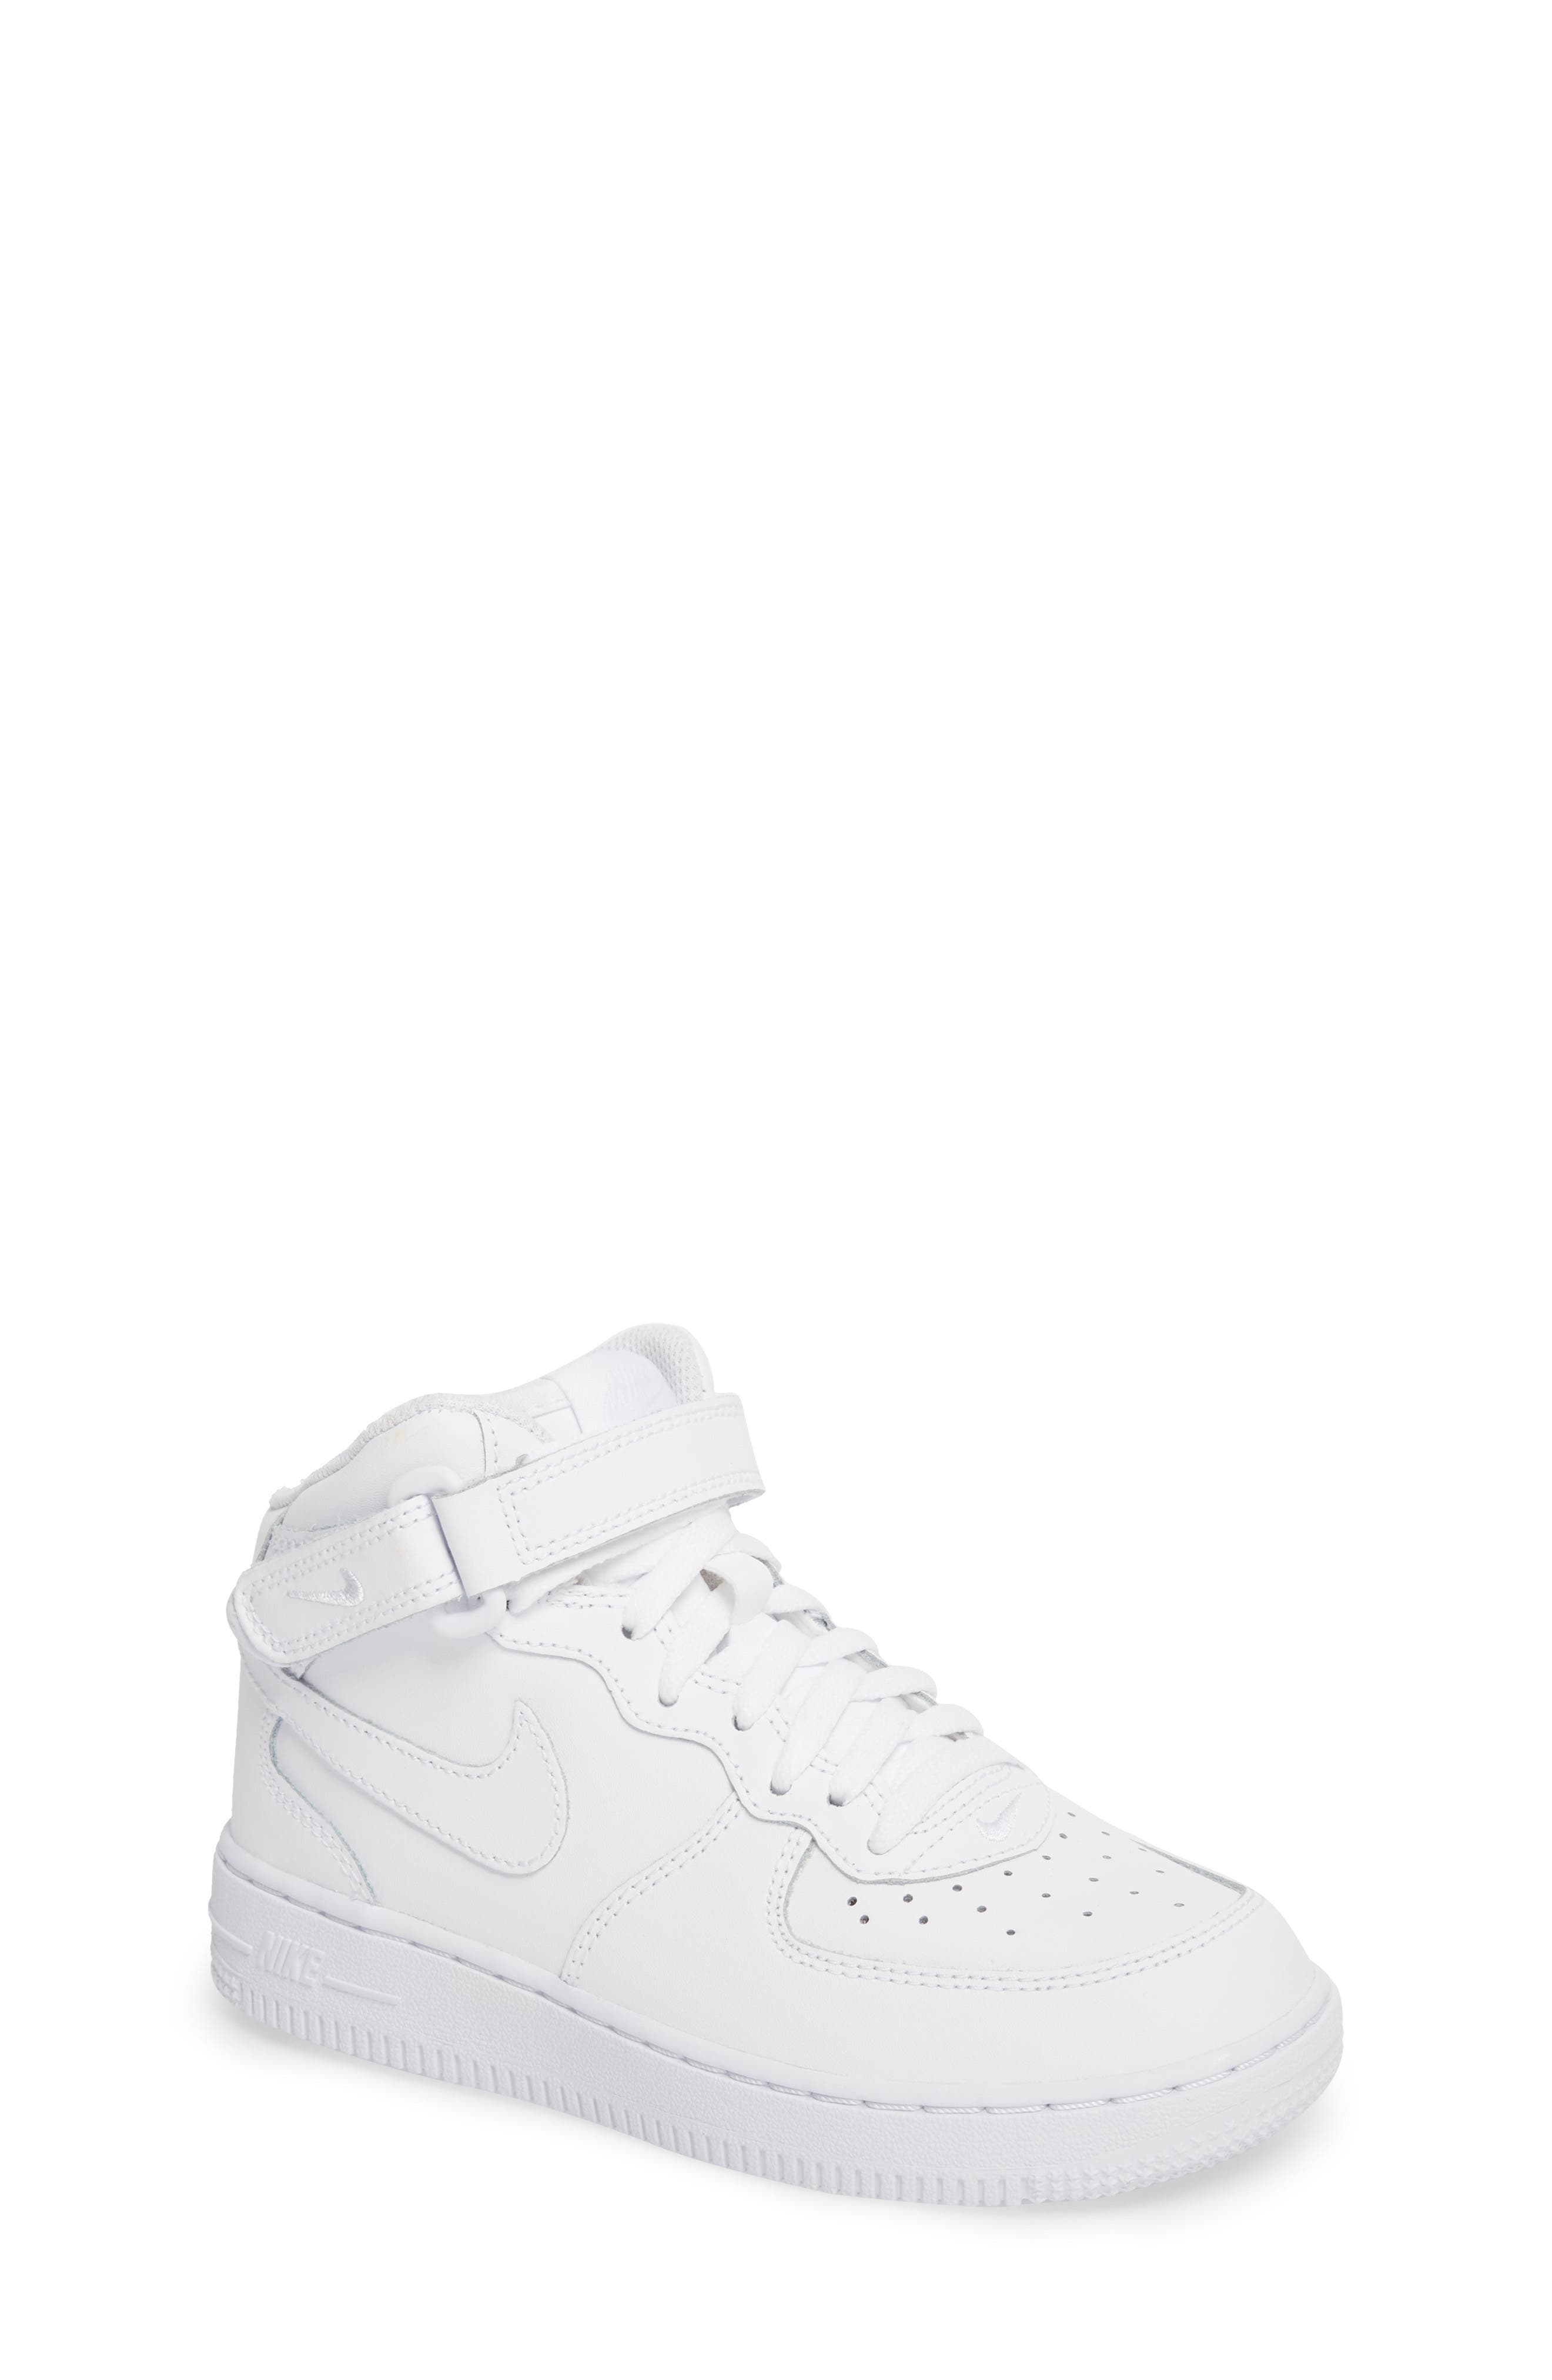 NIKE,                             Air Force 1 Mid Sneaker,                             Main thumbnail 1, color,                             WHITE/ WHITE